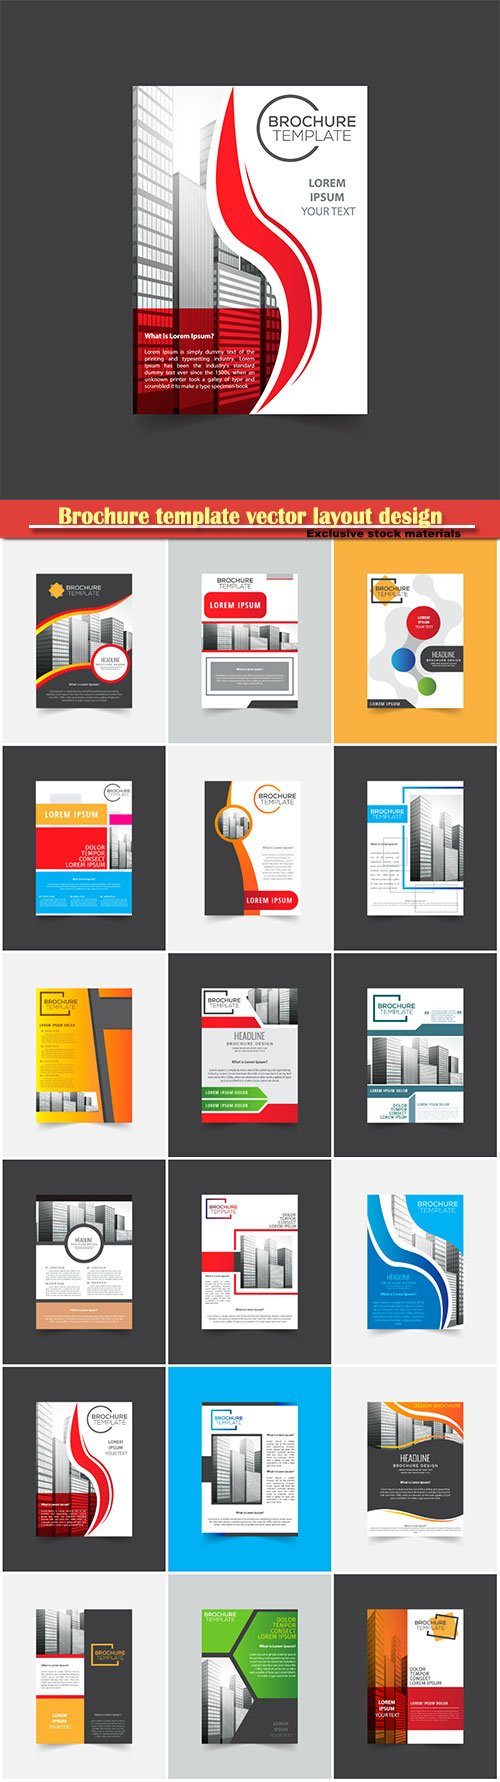 Brochure template vector layout design, corporate business annual report, magazine, flyer mockup # 111